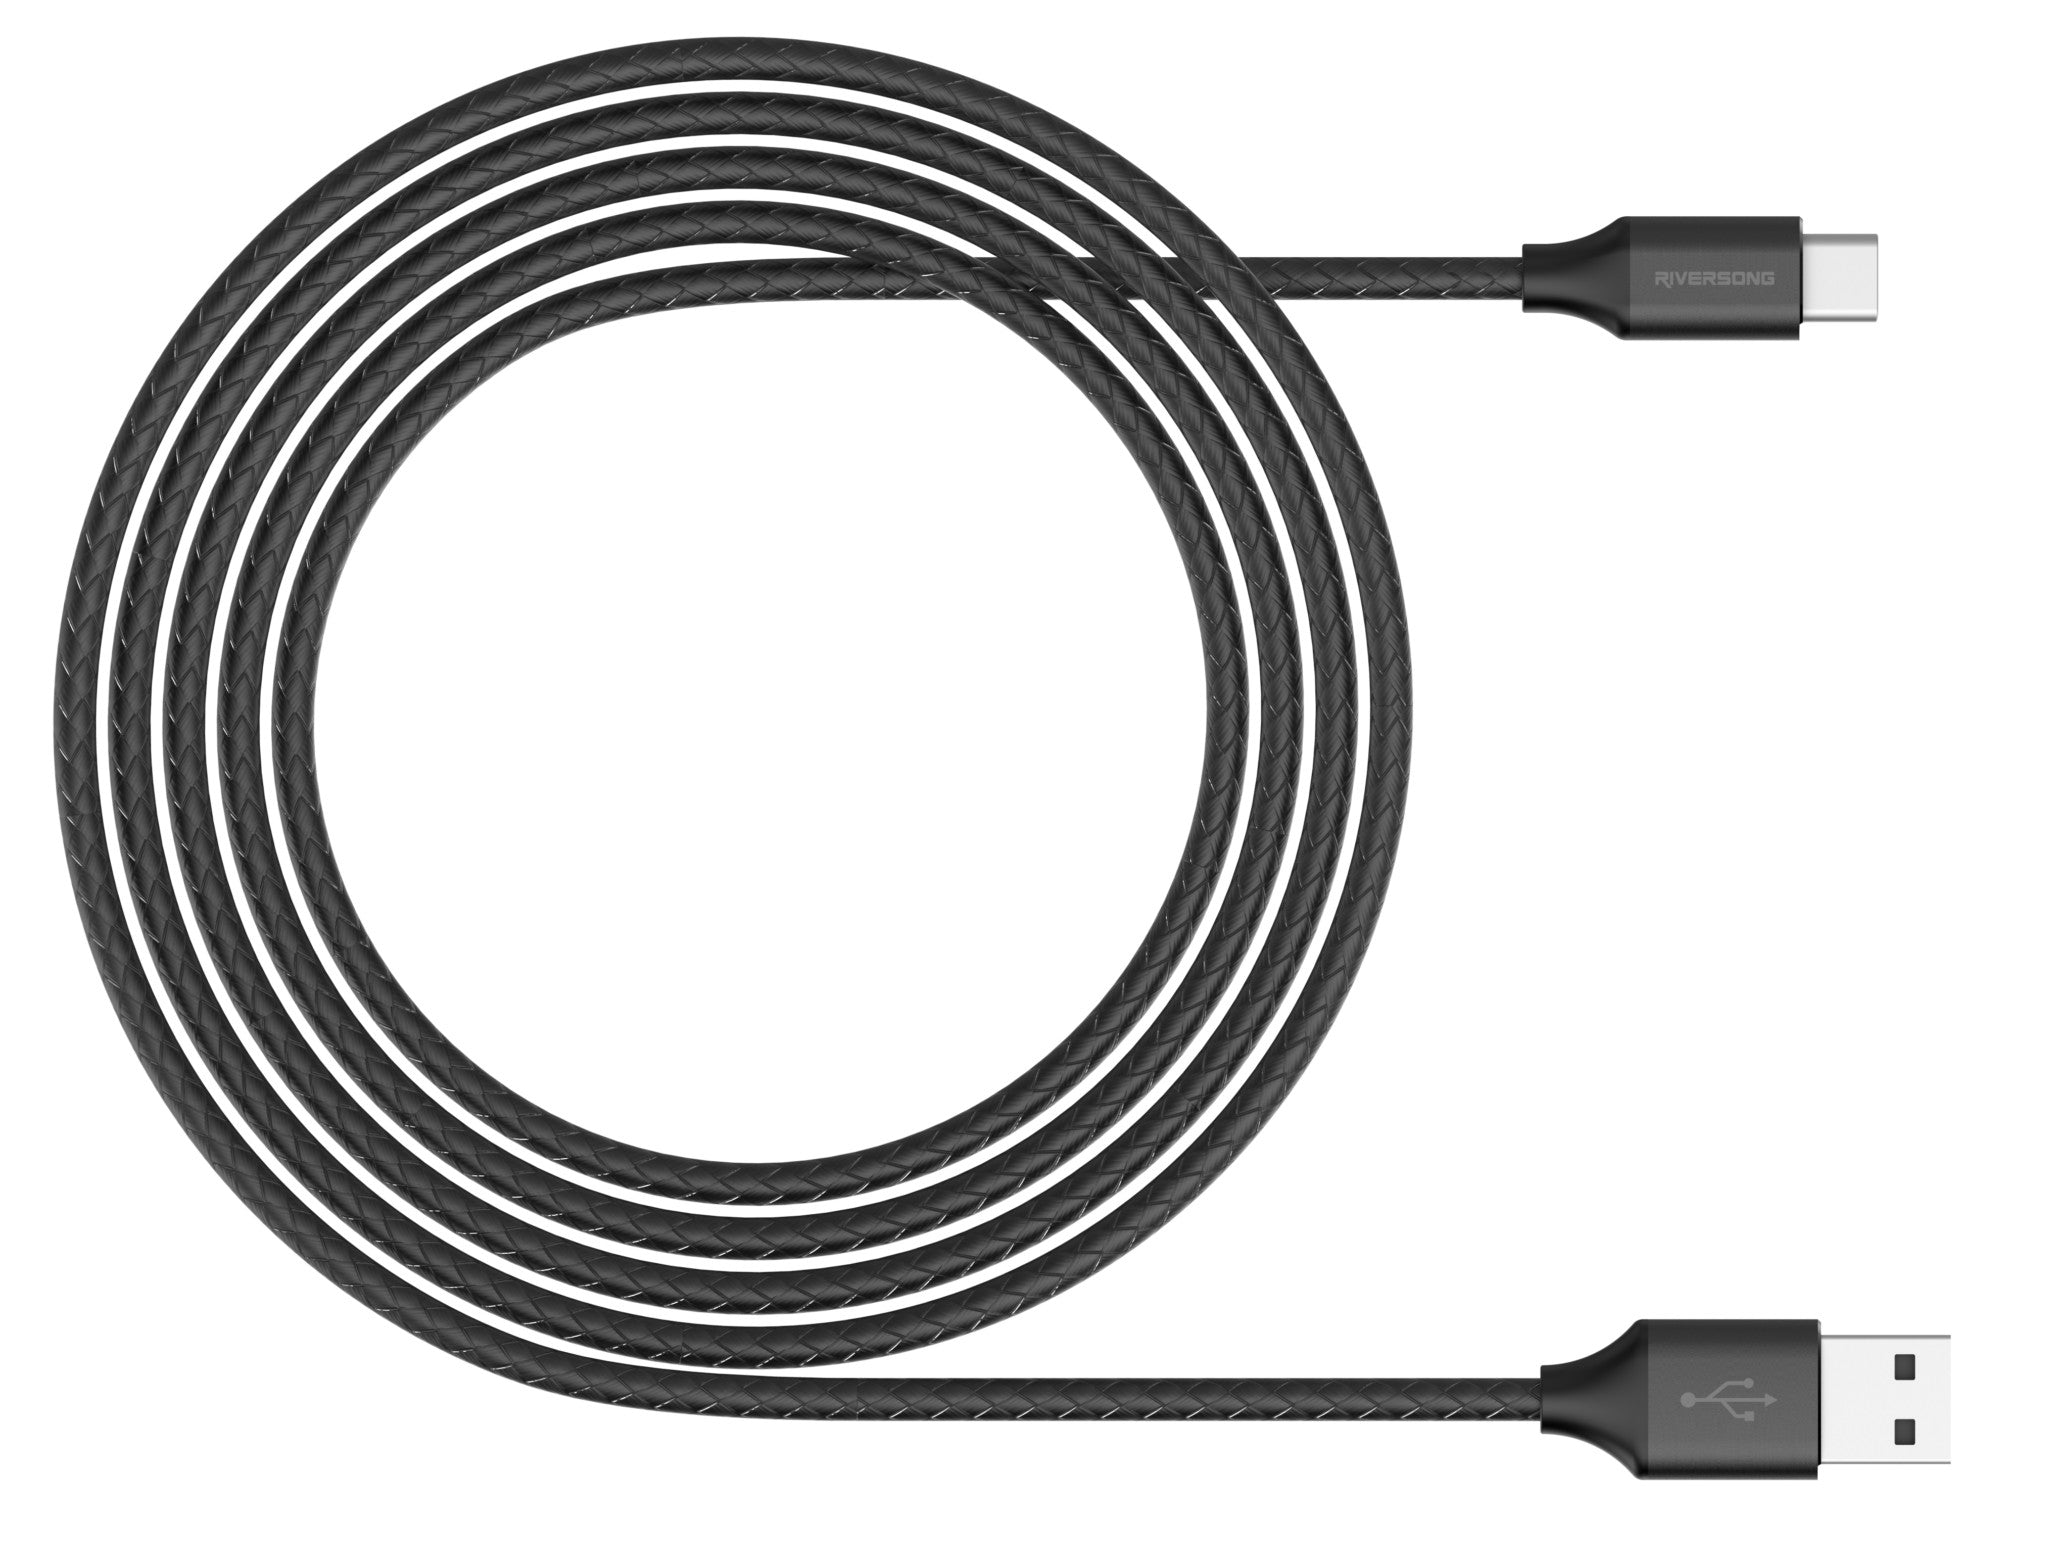 SUPERLINE TYPE C USB 2.4A, 1 Meter Charging Cable | Black | Riversong supertech